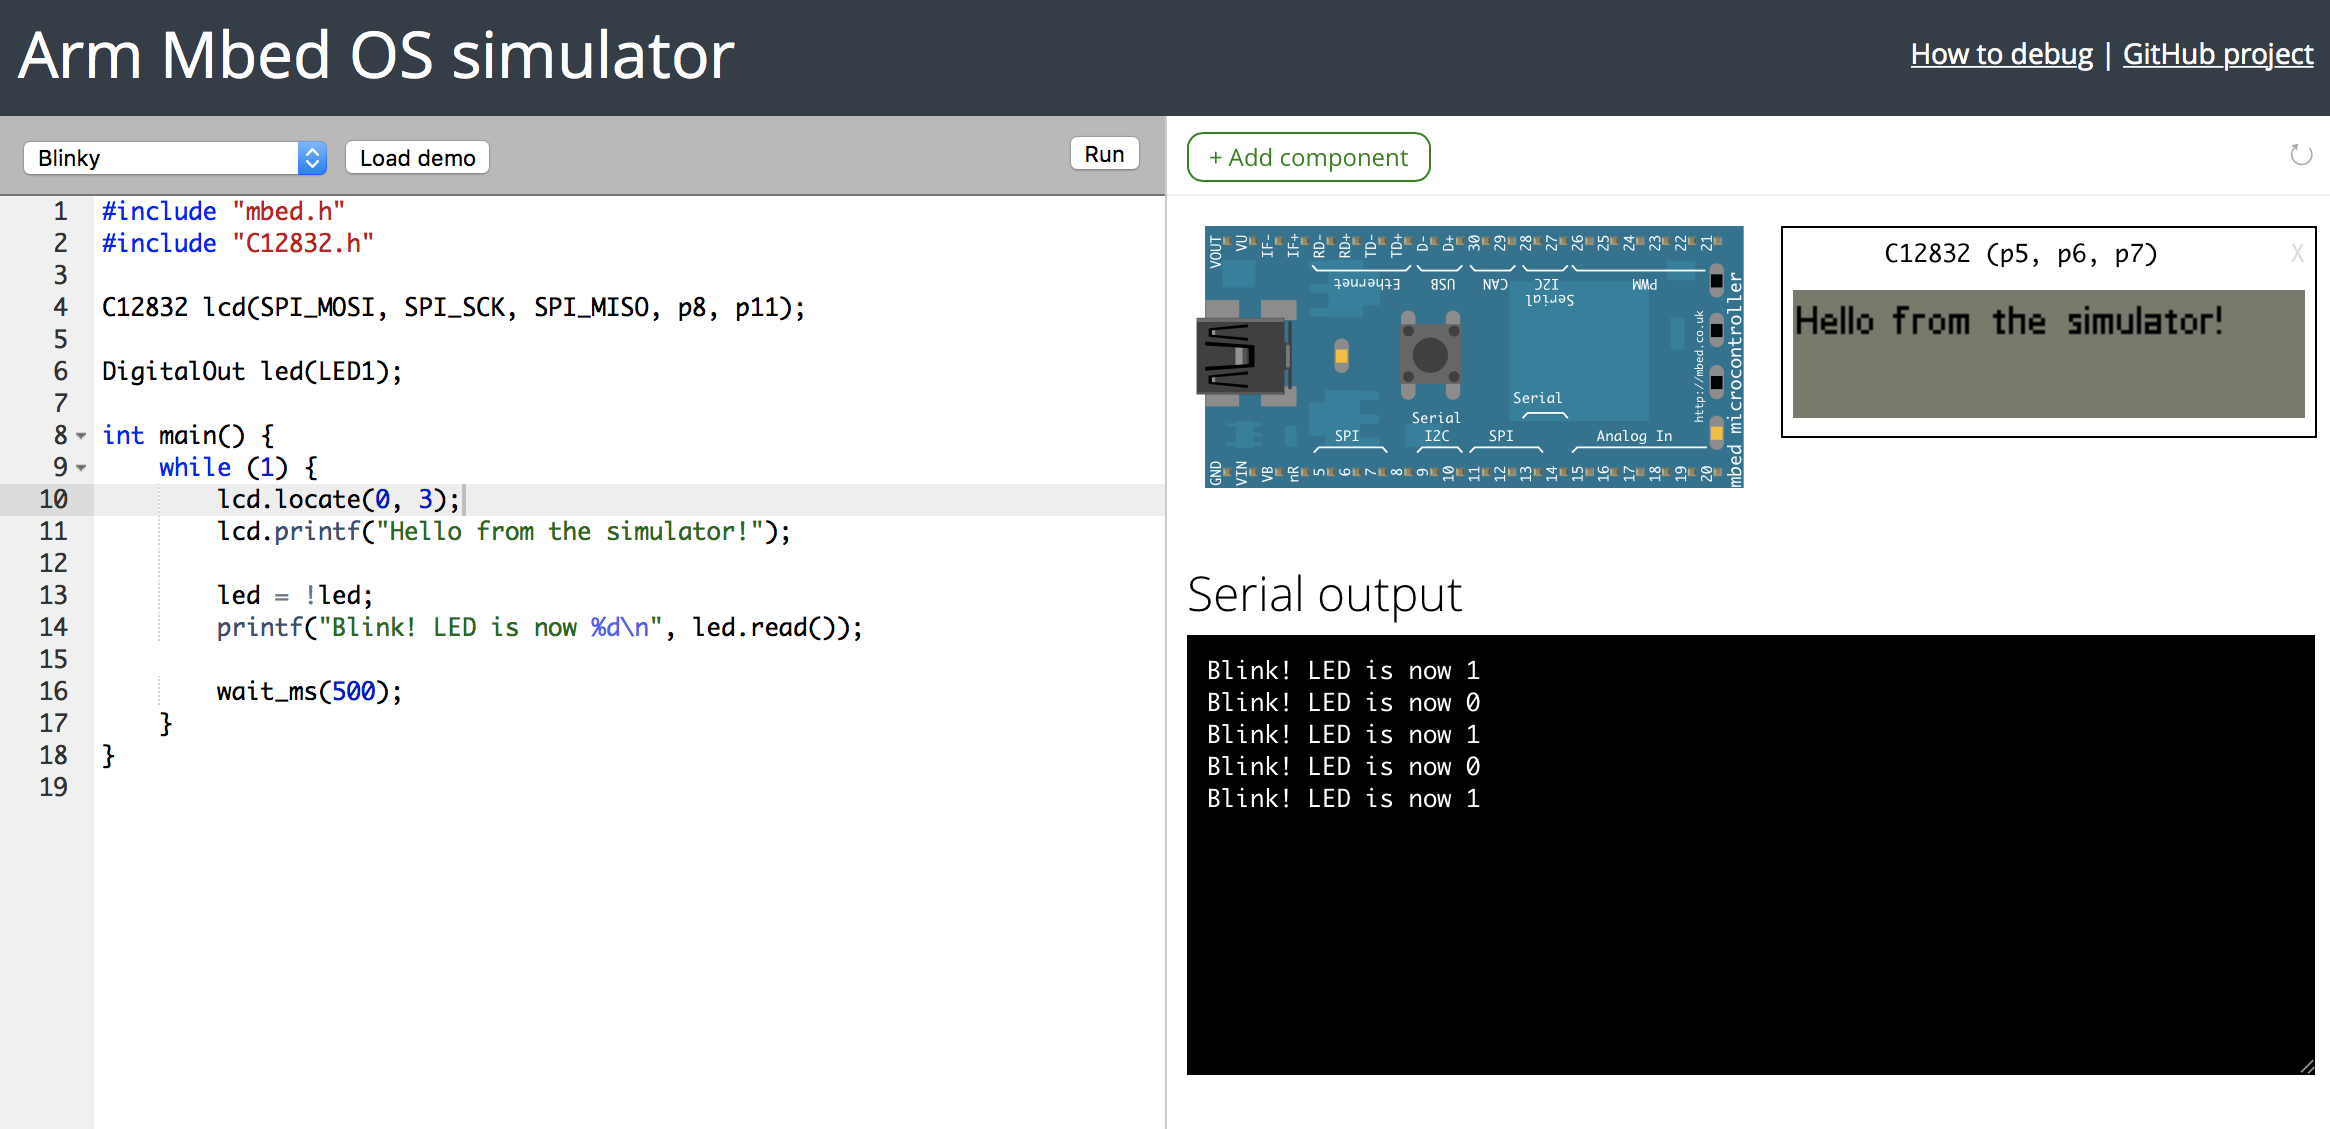 The Mbed Simulator online environment running Blinky and showing the C12832 LCD display